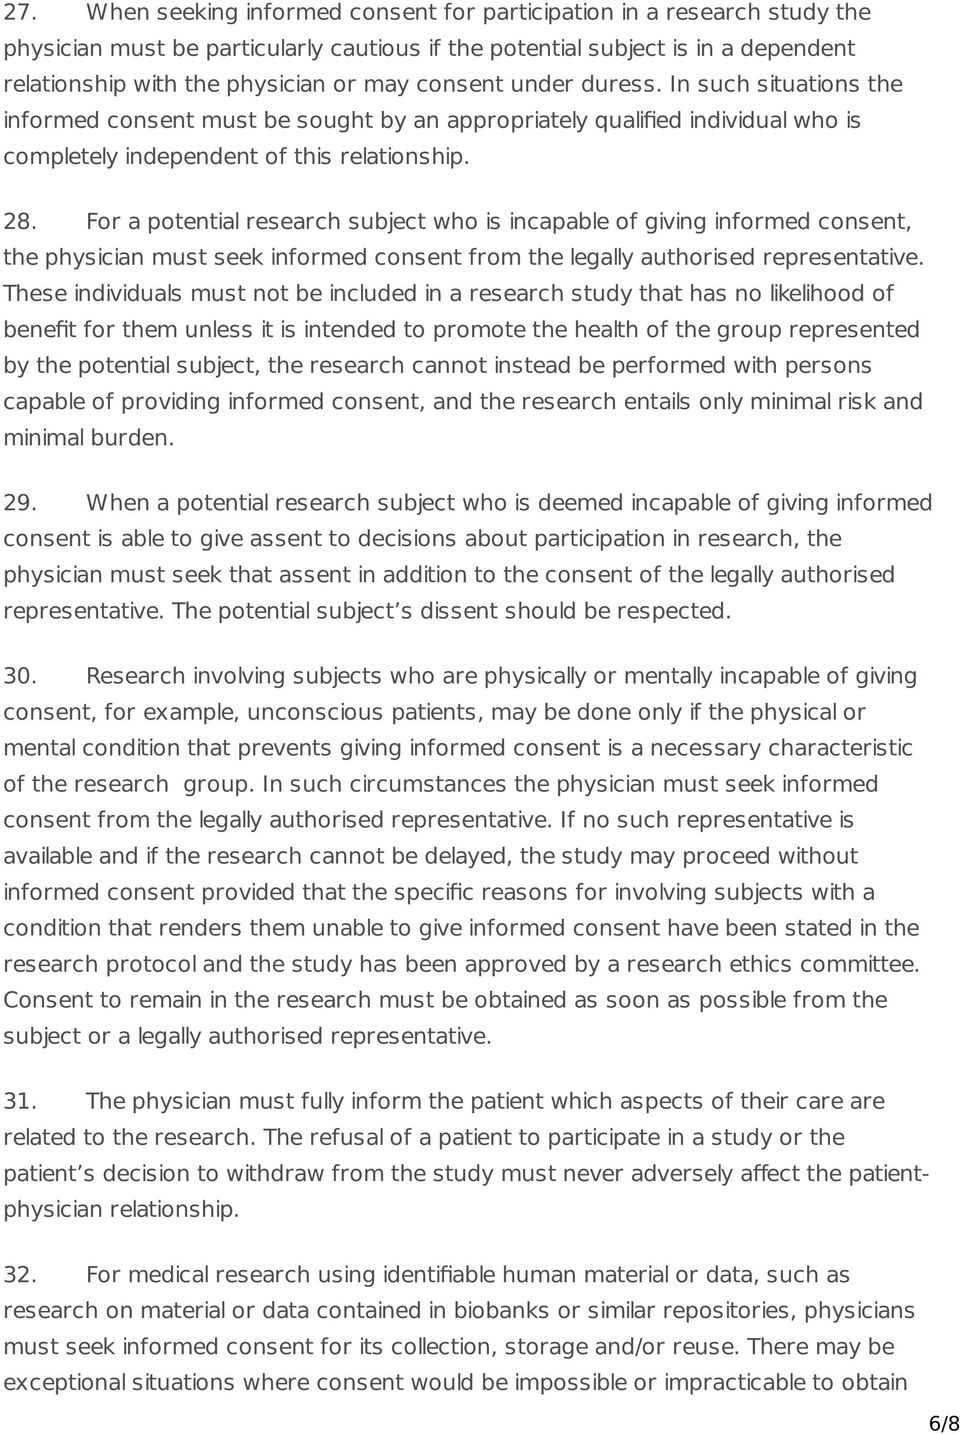 For a potential research subject who is incapable of giving informed consent, the physician must seek informed consent from the legally authorised representative.